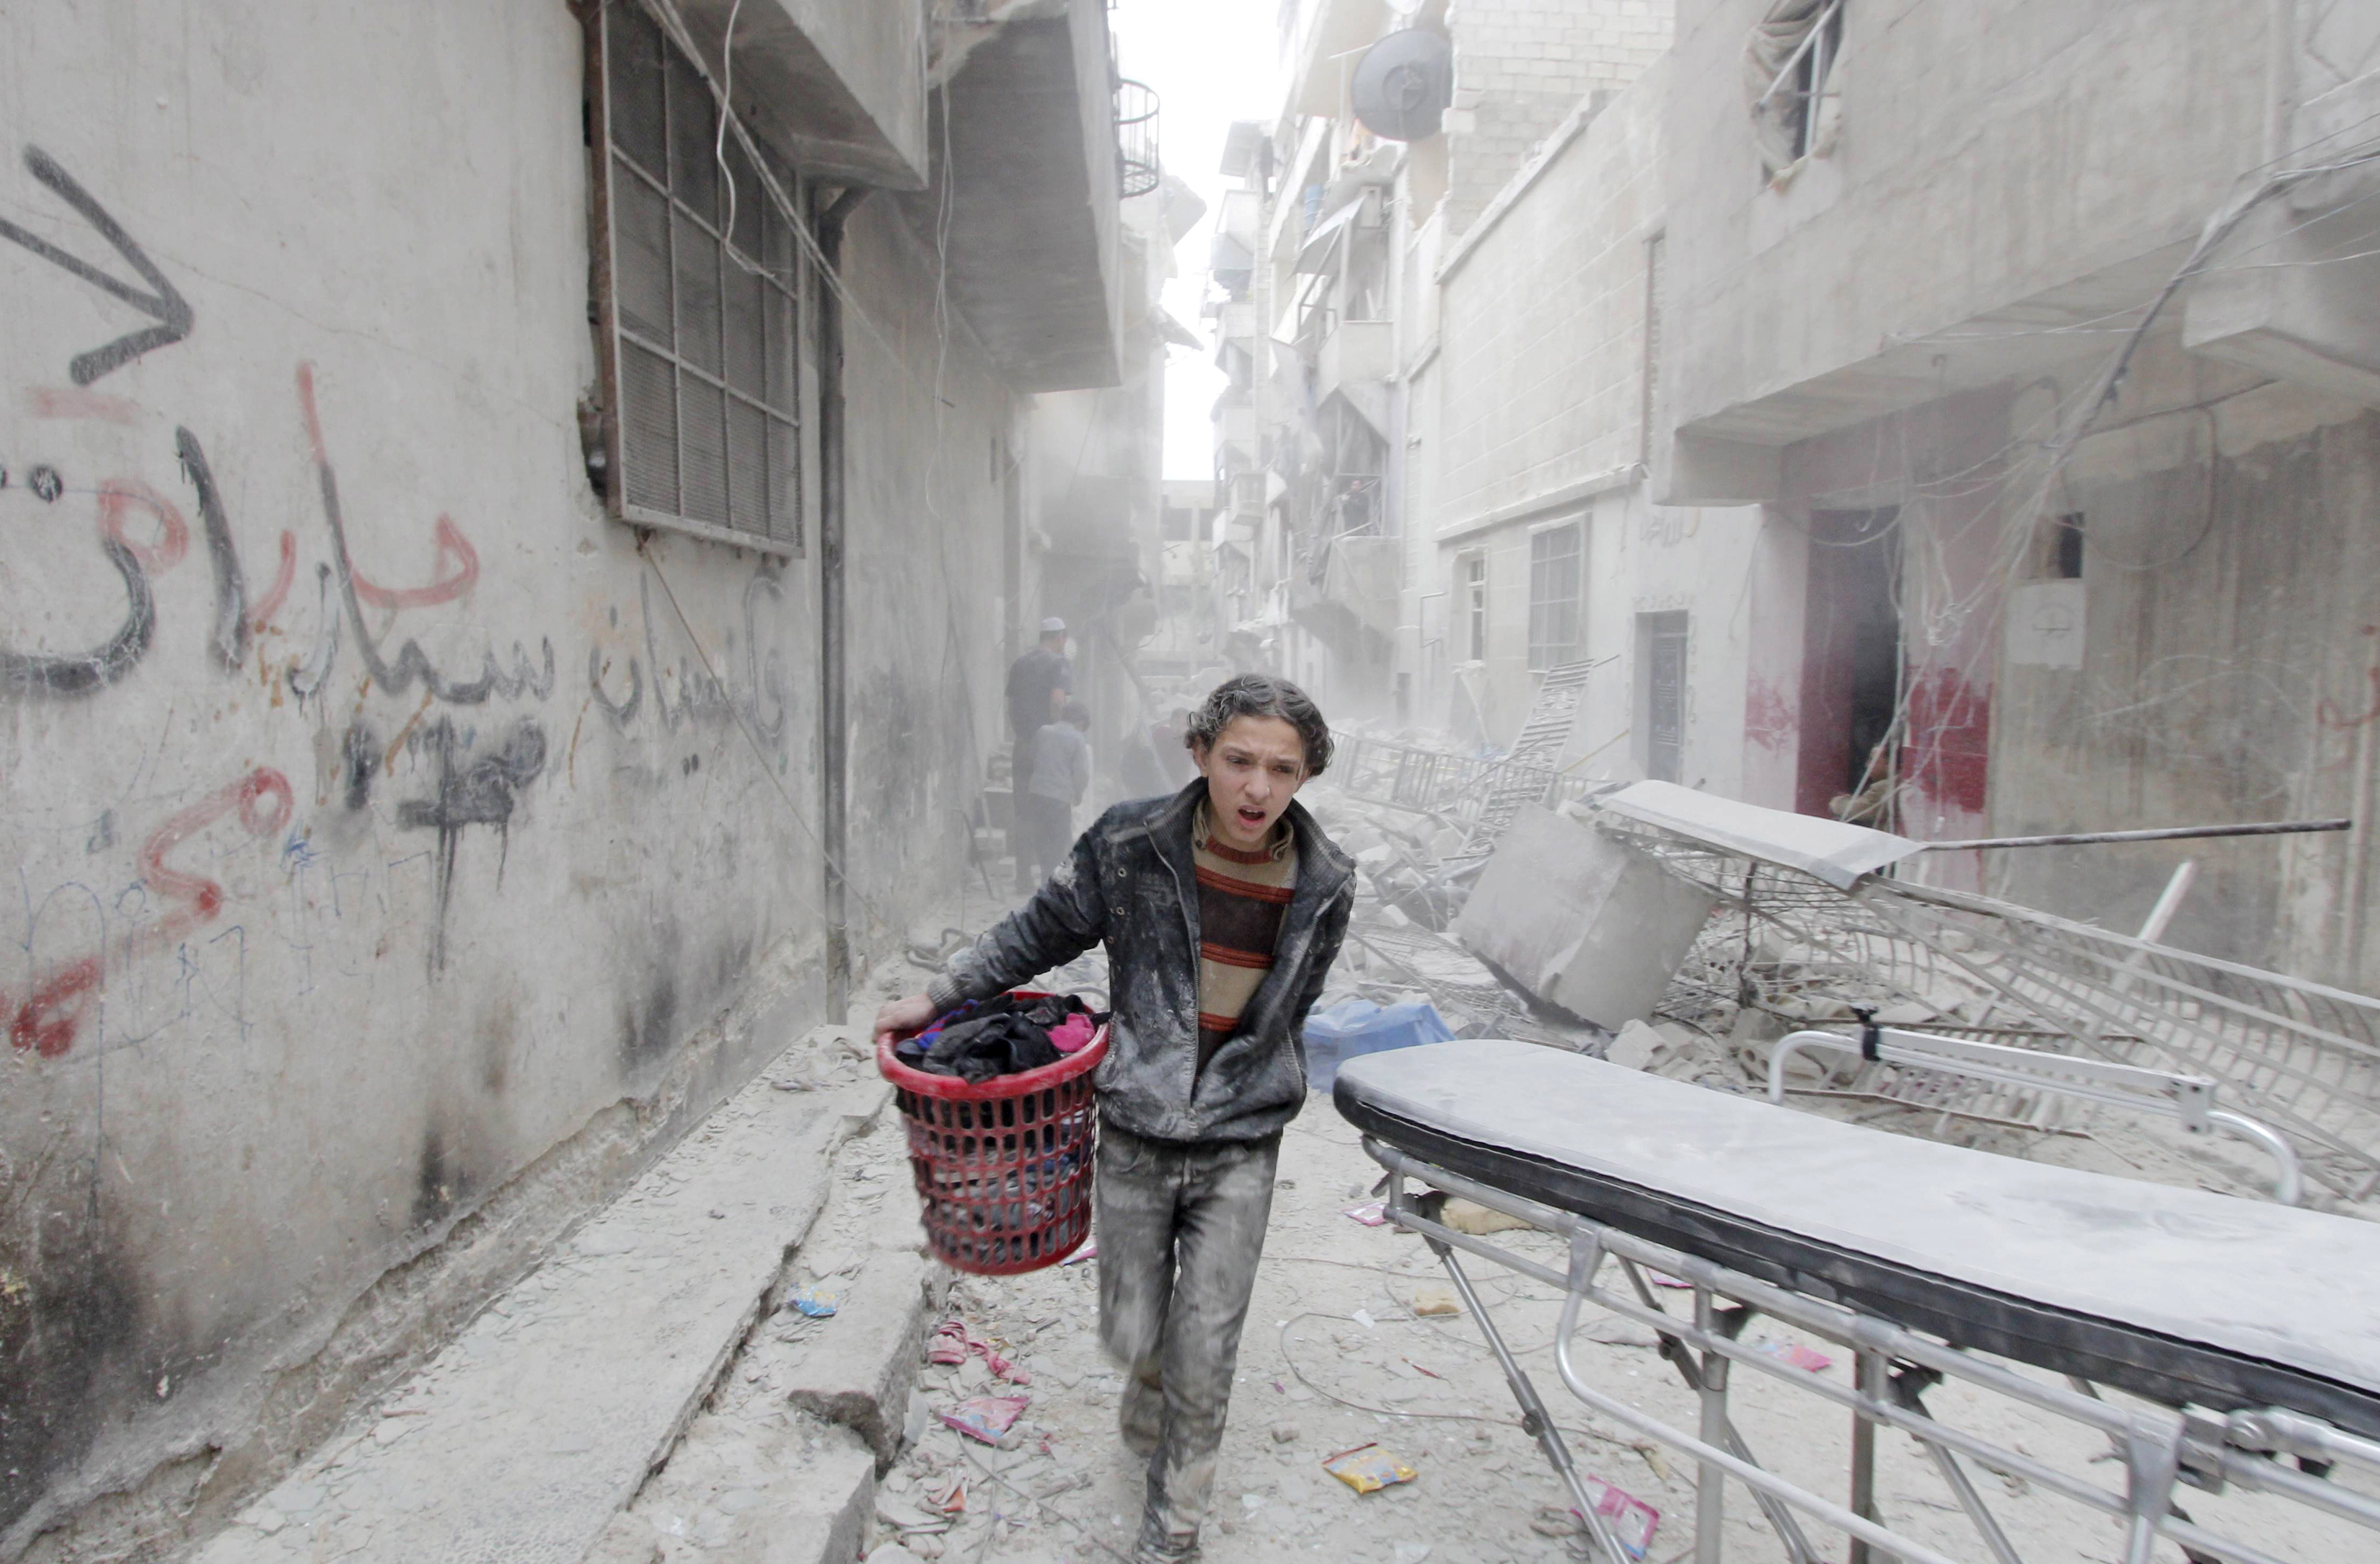 FILE PHOTO: A boy carries his belongings at a site hit by what activists said was a barrel bomb dropped by forces loyal to Syria's President Bashar al-Assad in Aleppo's al-Fardous district, Syria April 2, 2015. REUTERS/Rami Zayat/File Photo